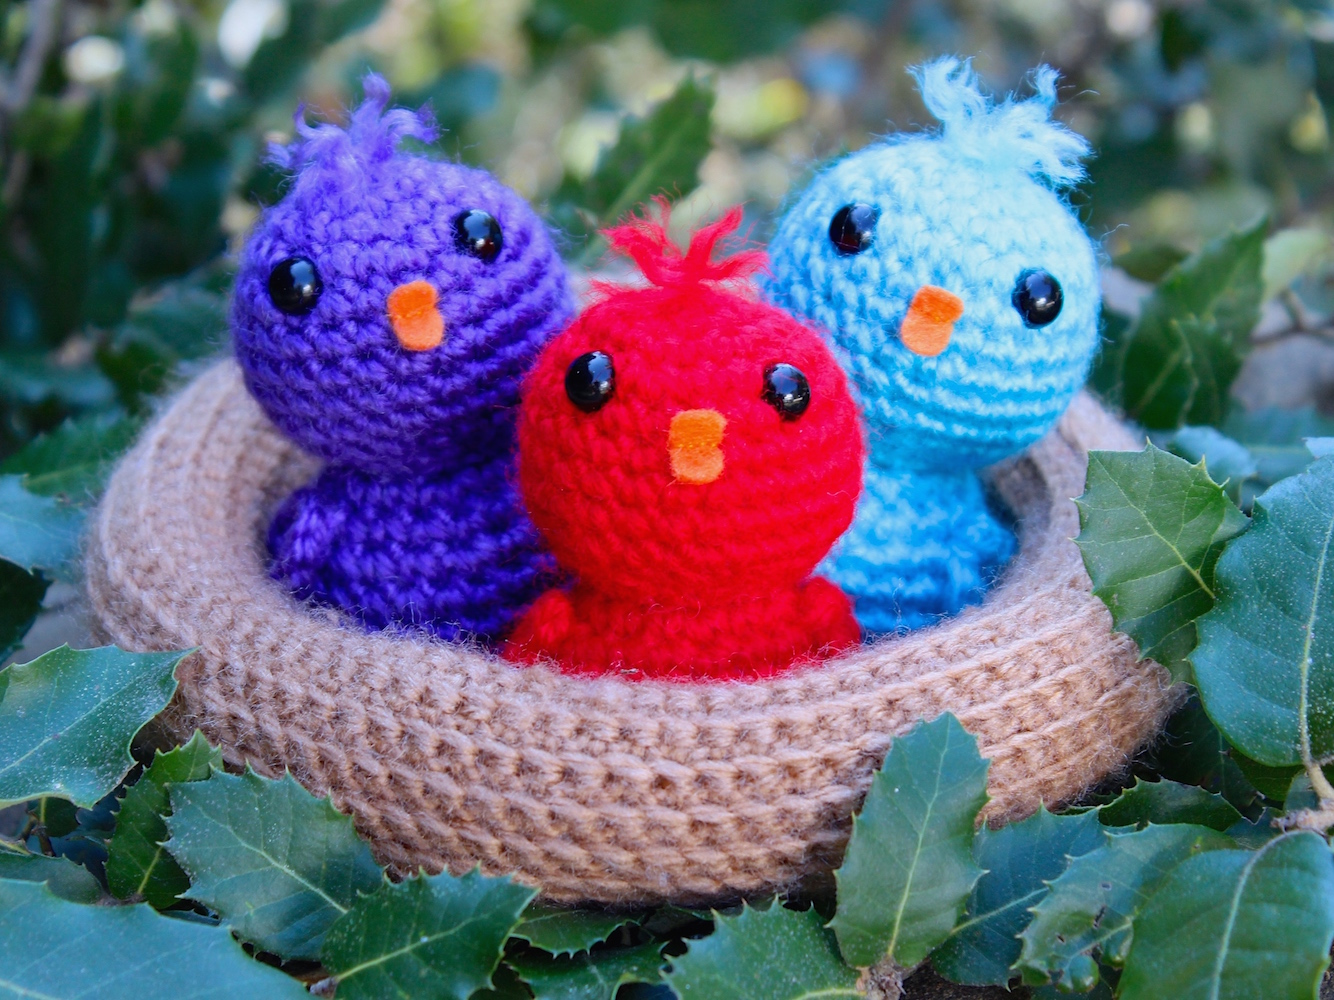 Amigurumi Crochet Pattern : Baby birds in a nest u2013 tremendu crochet